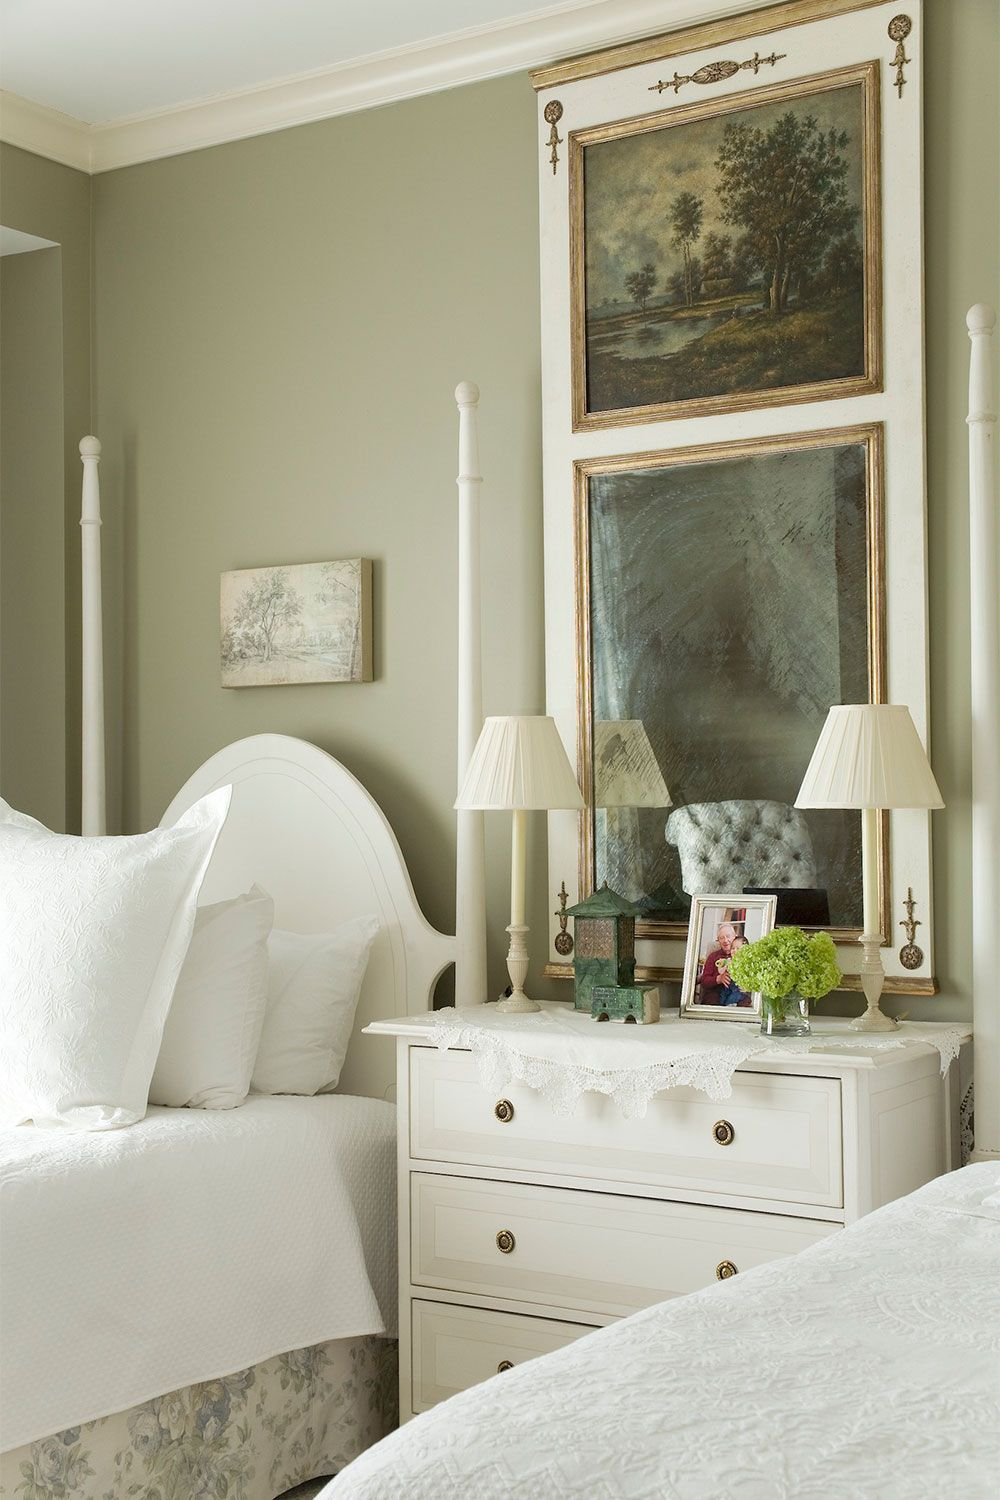 4 Green Bedroom Design Ideas for a Fresh Upgrade